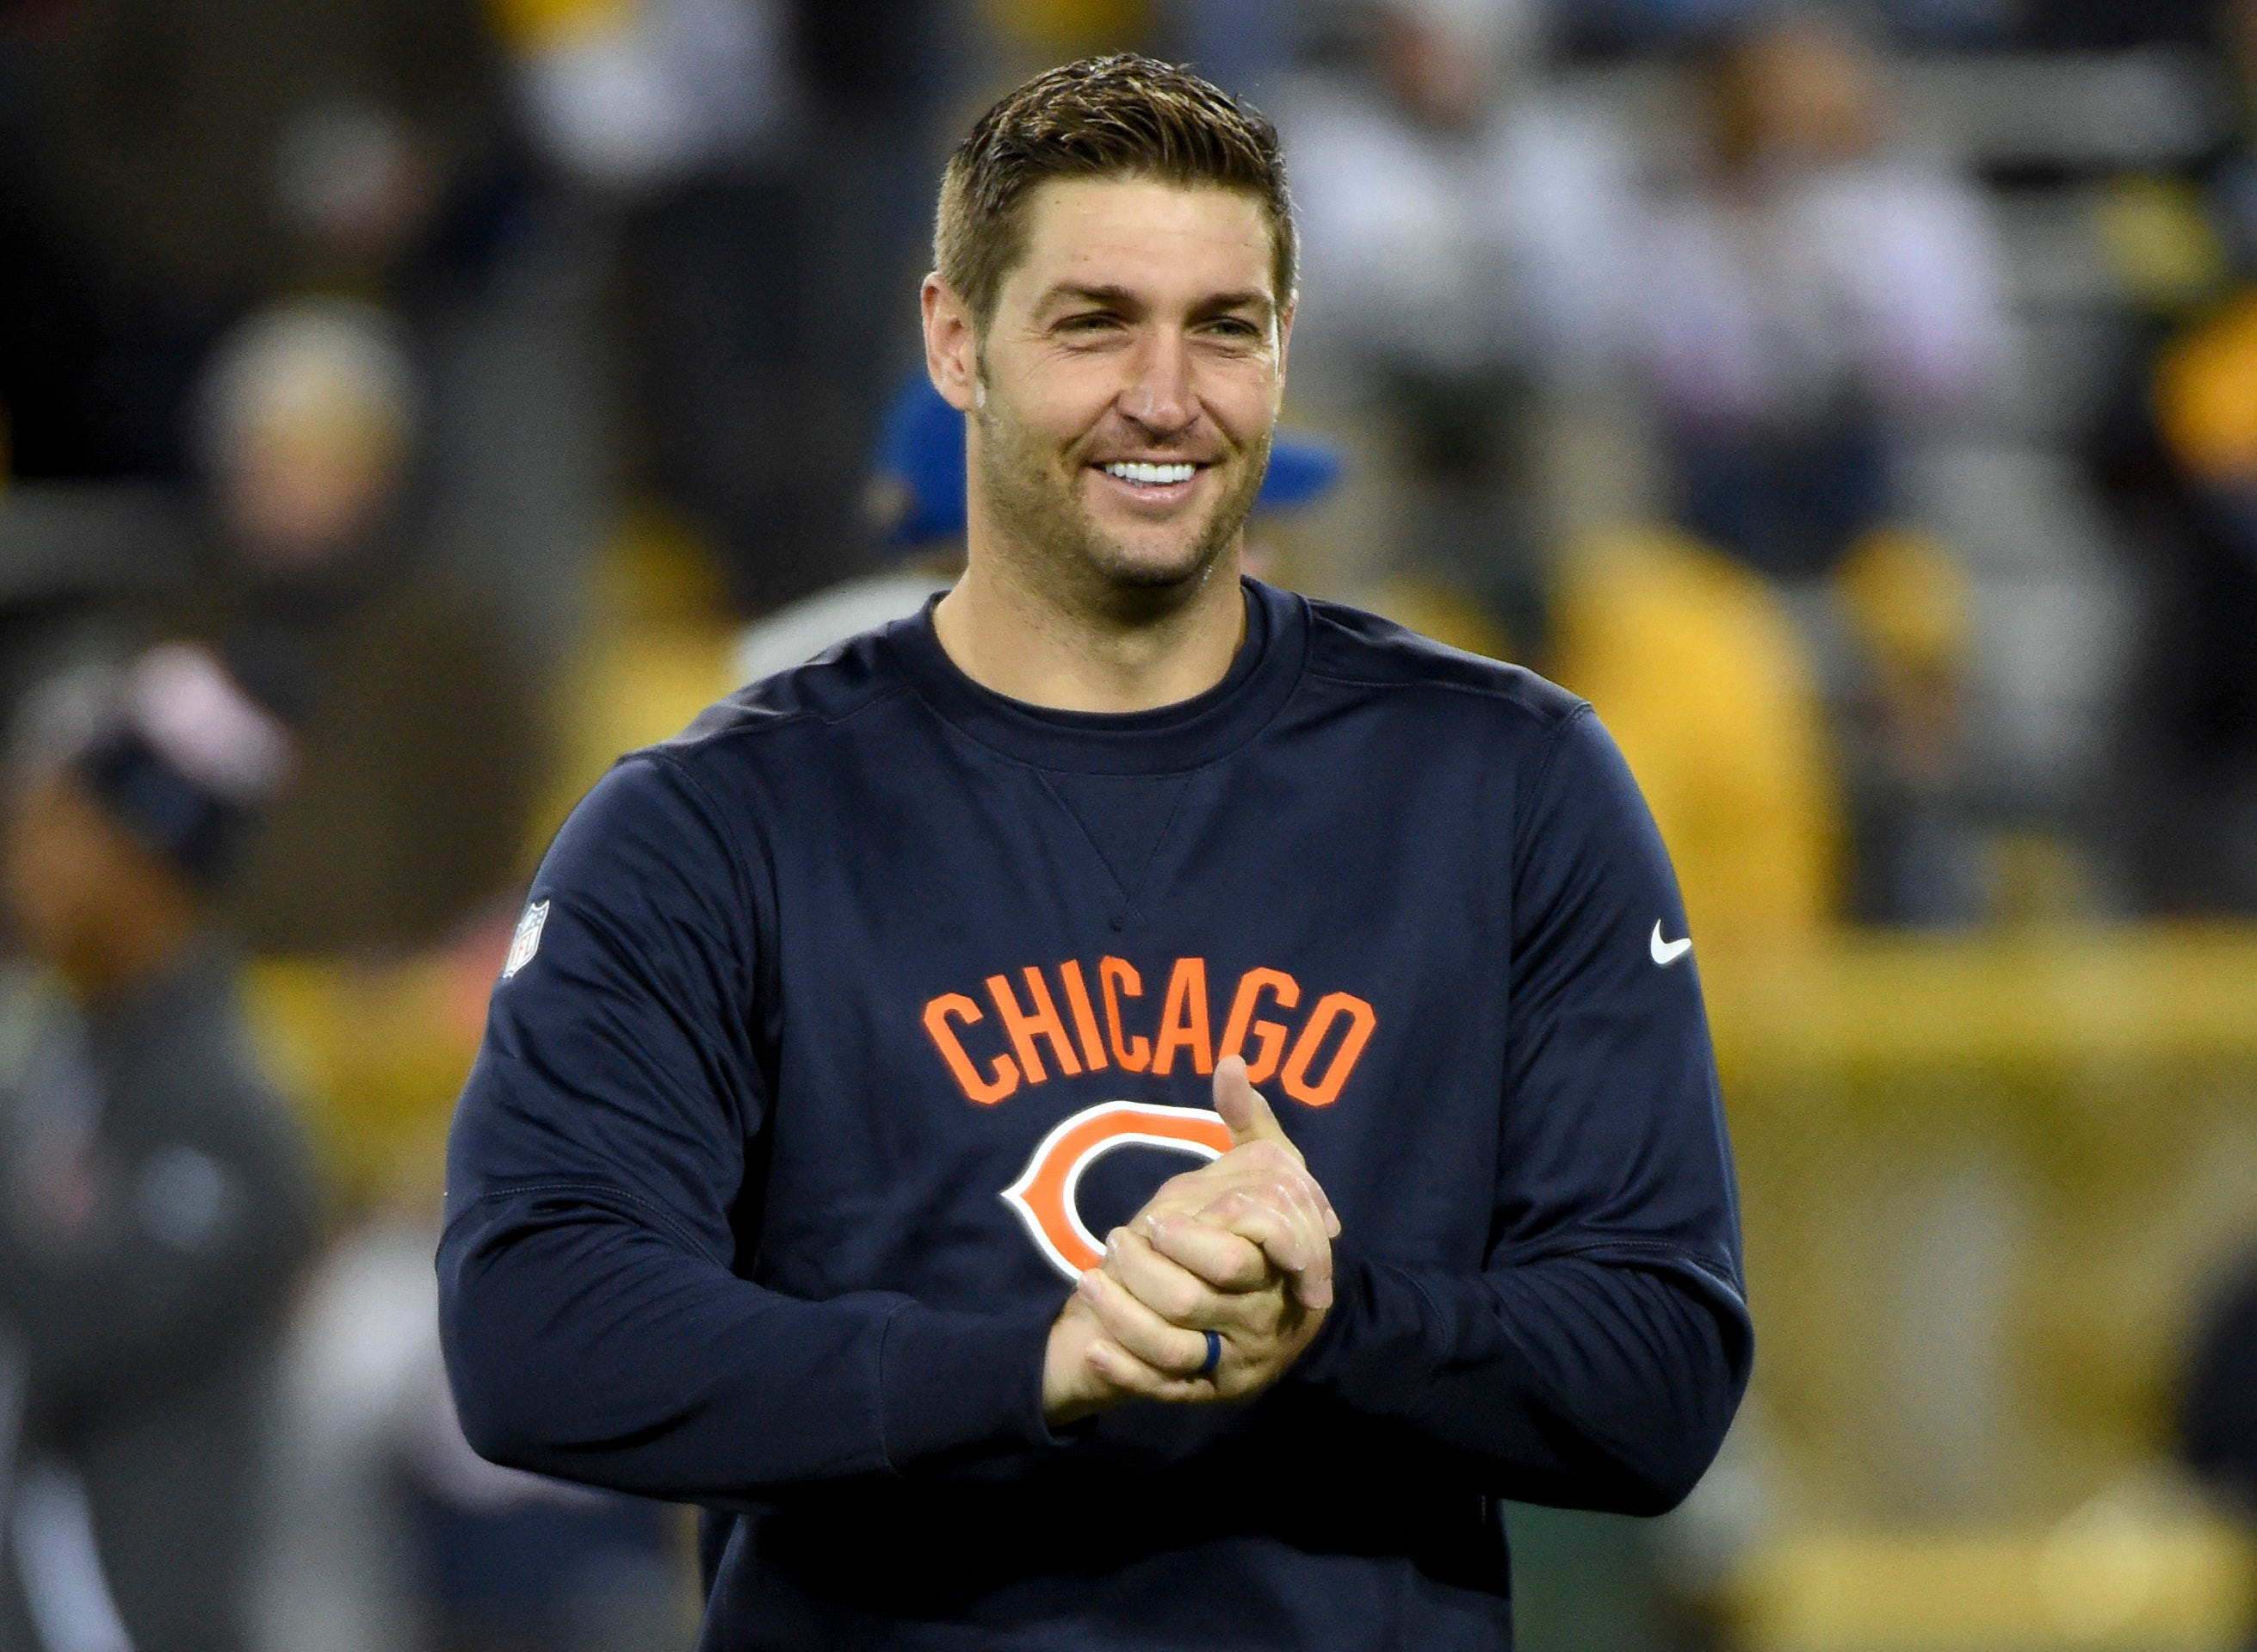 USP NFL: CHICAGO BEARS AT GREEN BAY PACKERS S FBN USA WI Part 80